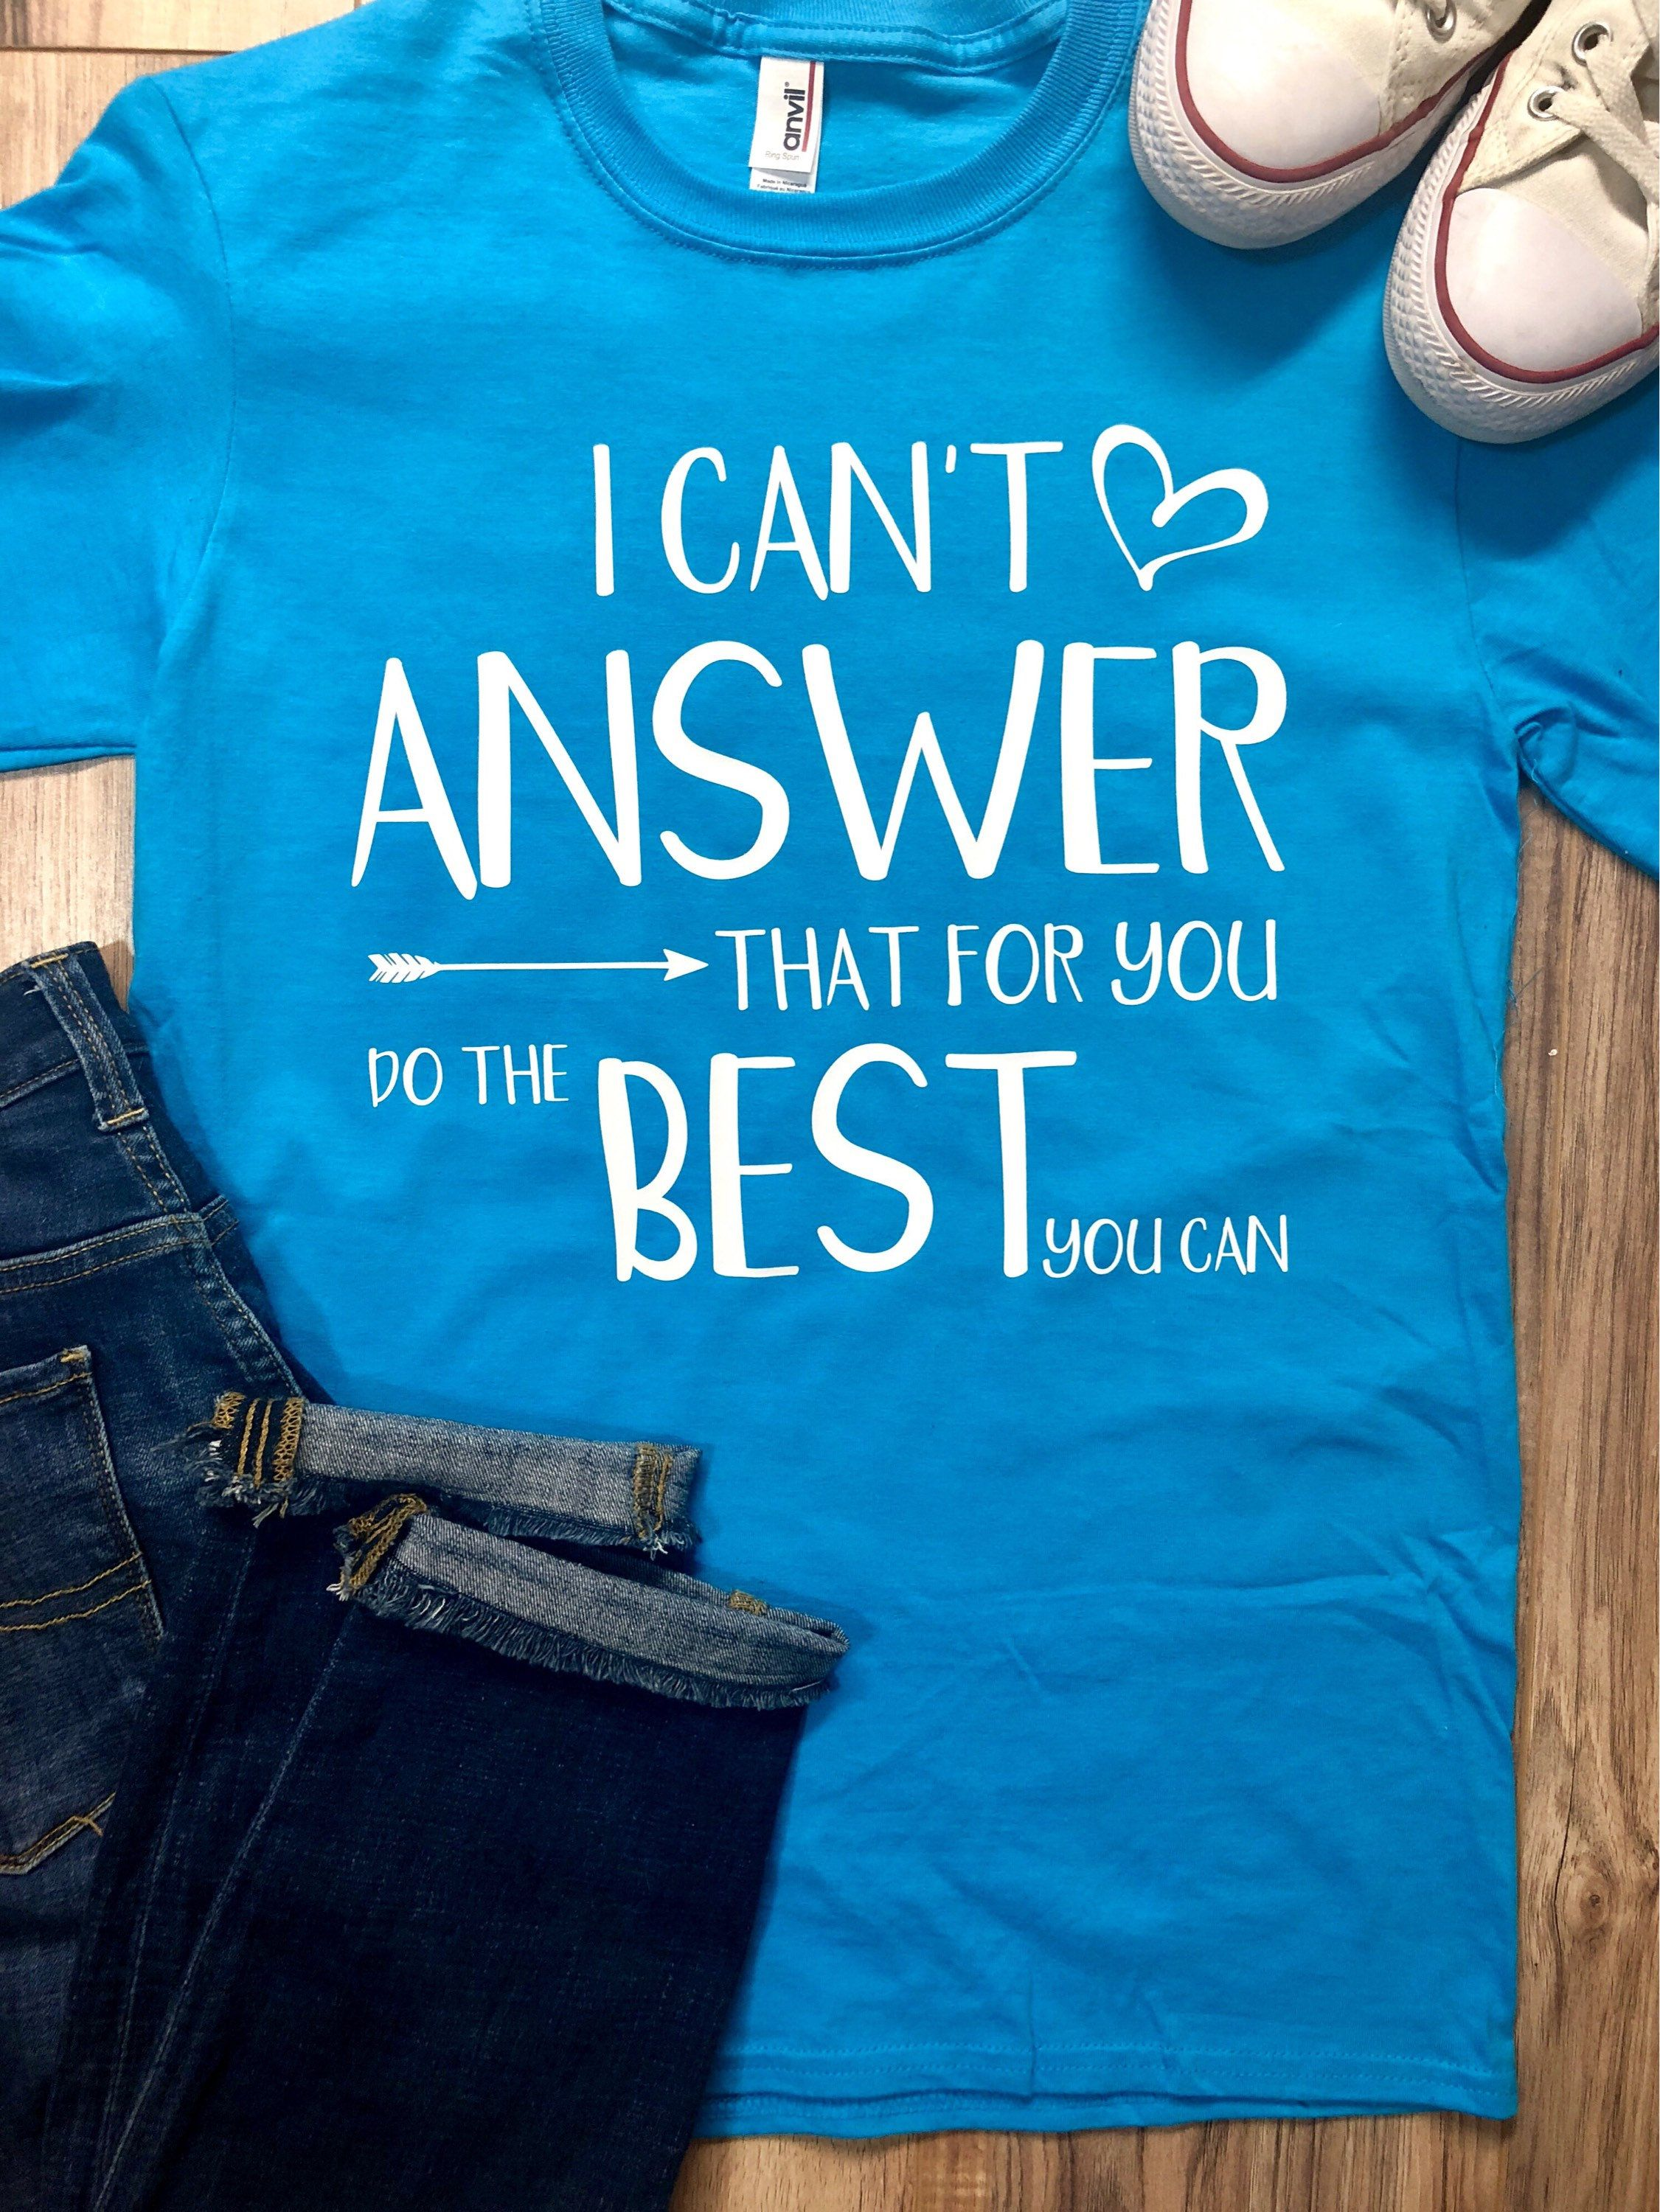 566e49e55 I Can't Answer That For You Tshirt, Standardized Testing Shirt, STAAR  Testing Shirt, Teacher Shirt, Cute Funny Teacher Shirt, Teacher Gift by  MarissaMakesIt ...